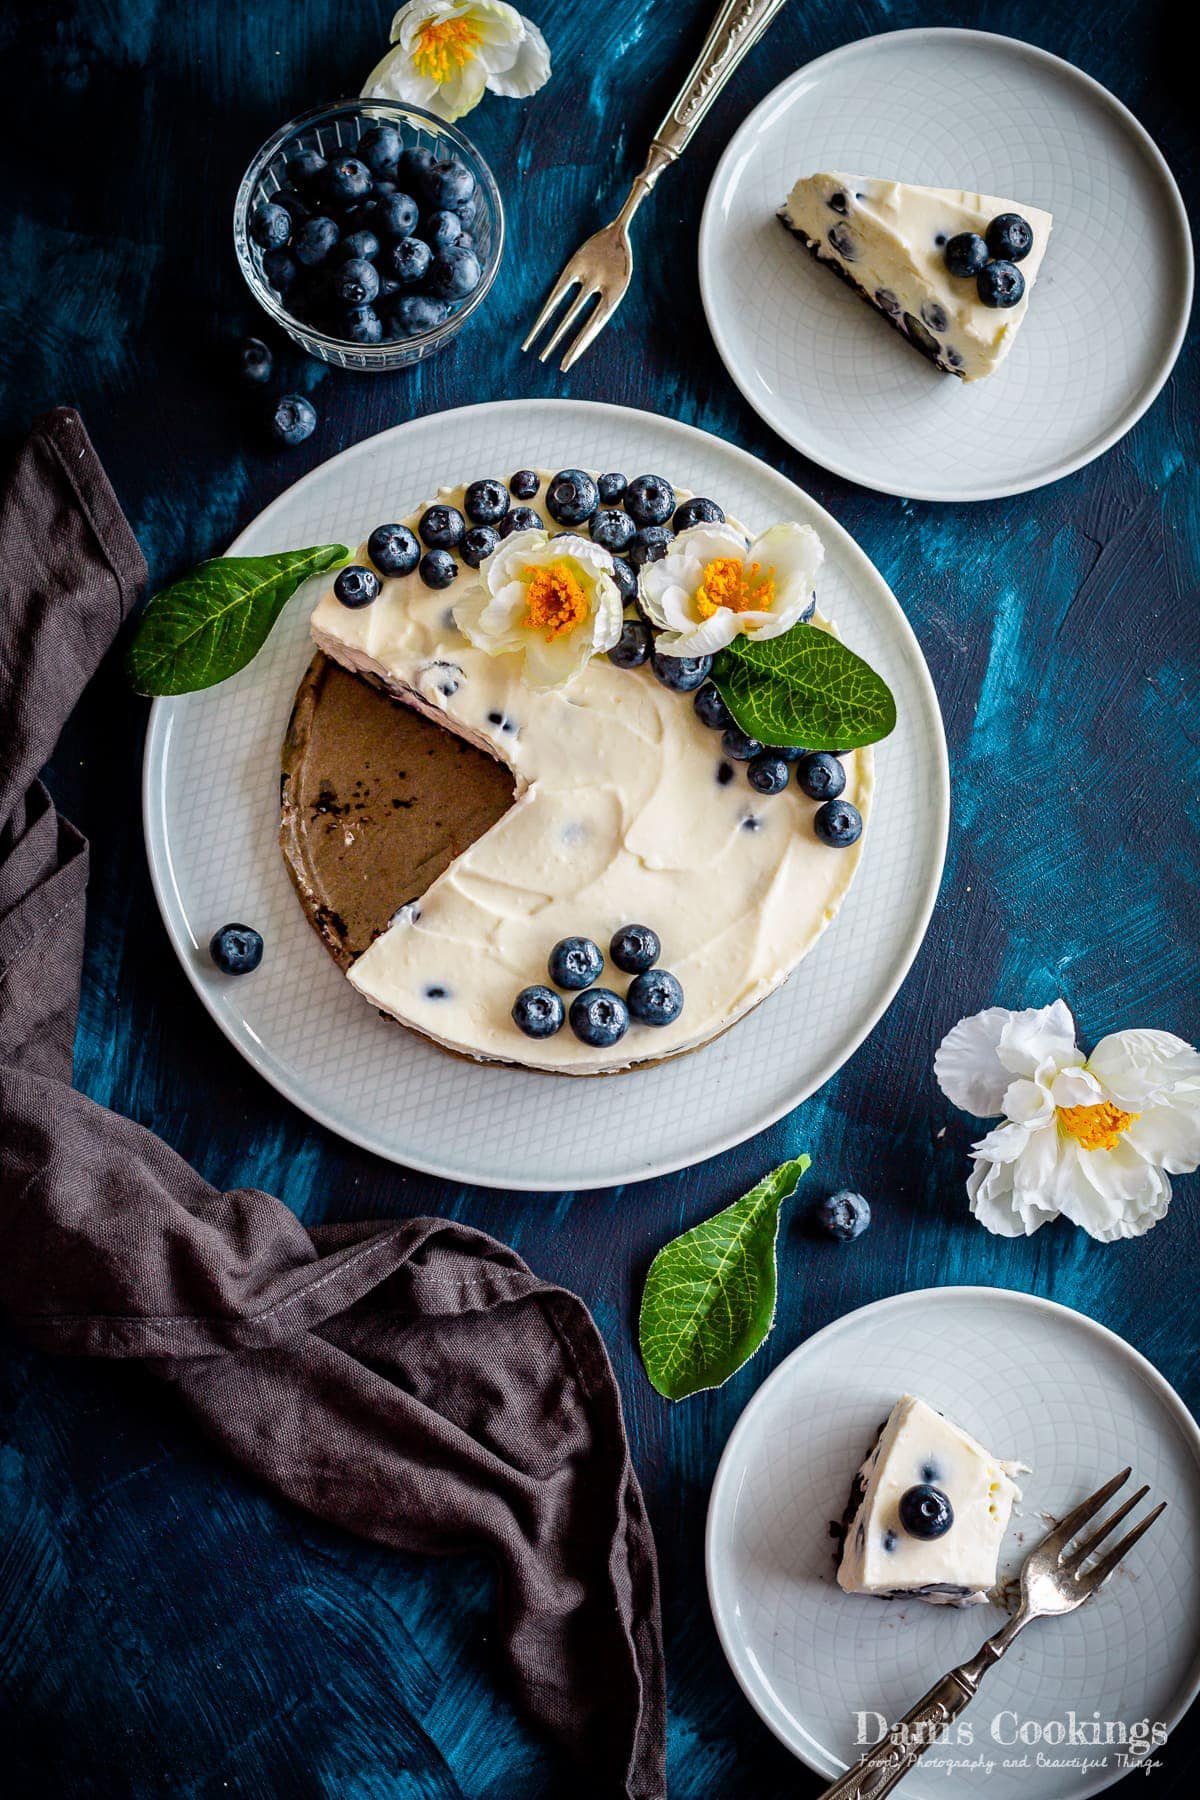 blueberry cheesecake with two slices aside, flat lay